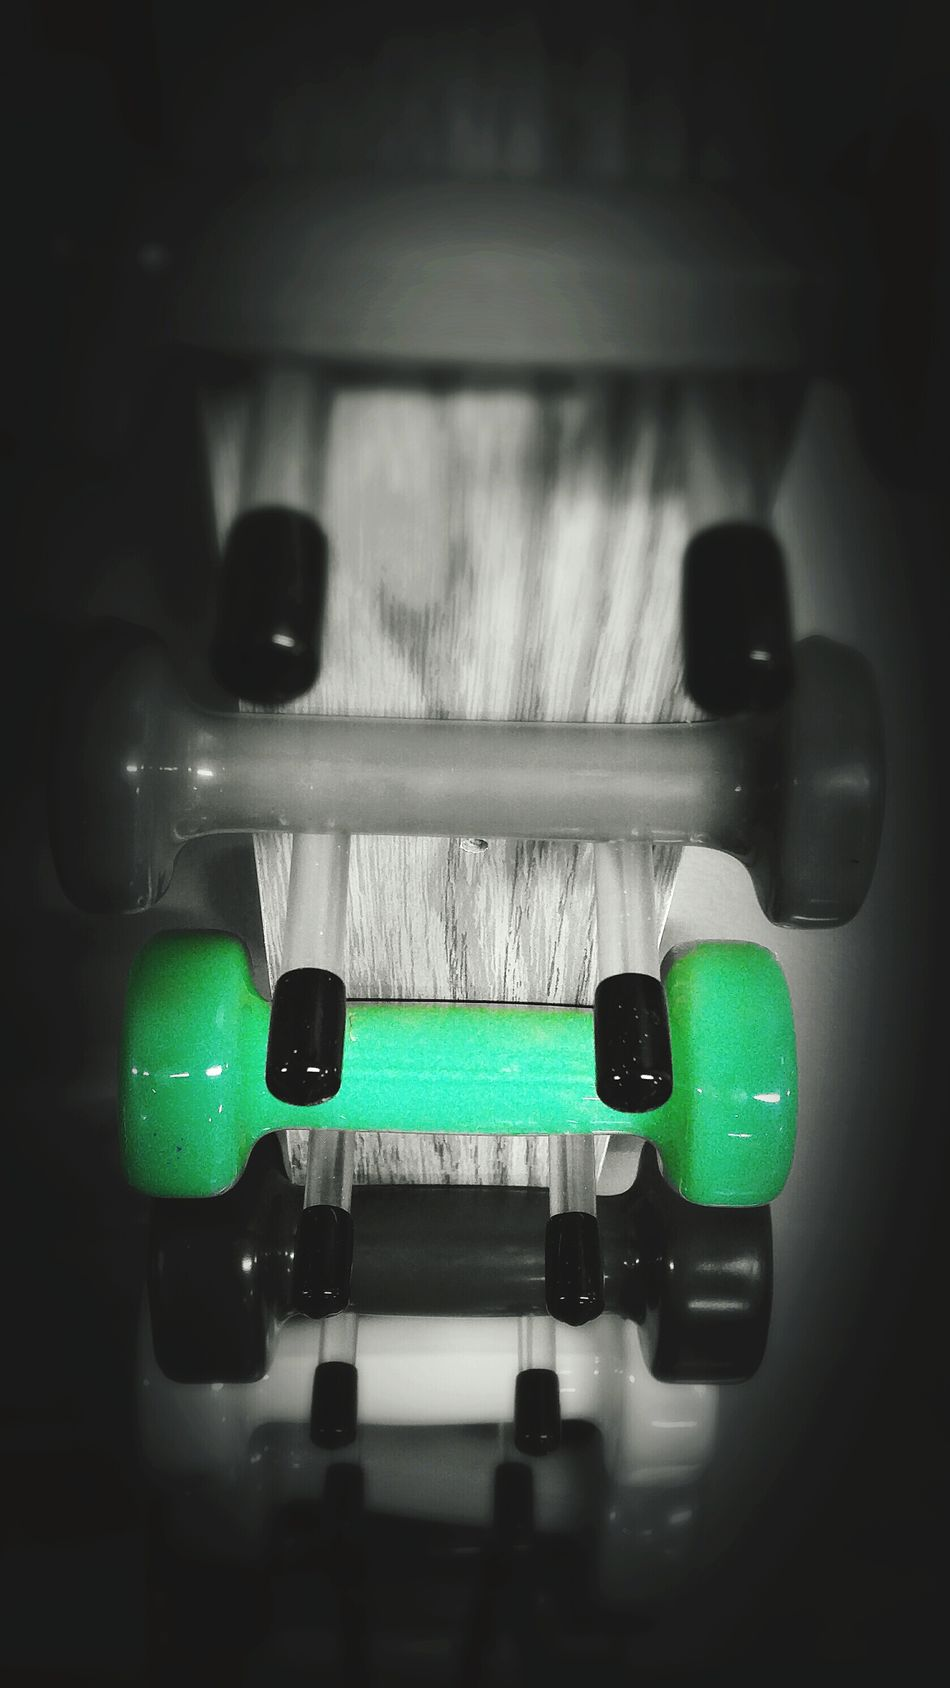 Dumbbells No People Green Color Indoors  Close-up Workout Equipment Wallhanging Exercise Time Dumbells In Gym Exercise Is Health Physical Fitness Physical Exercise Arm Workout